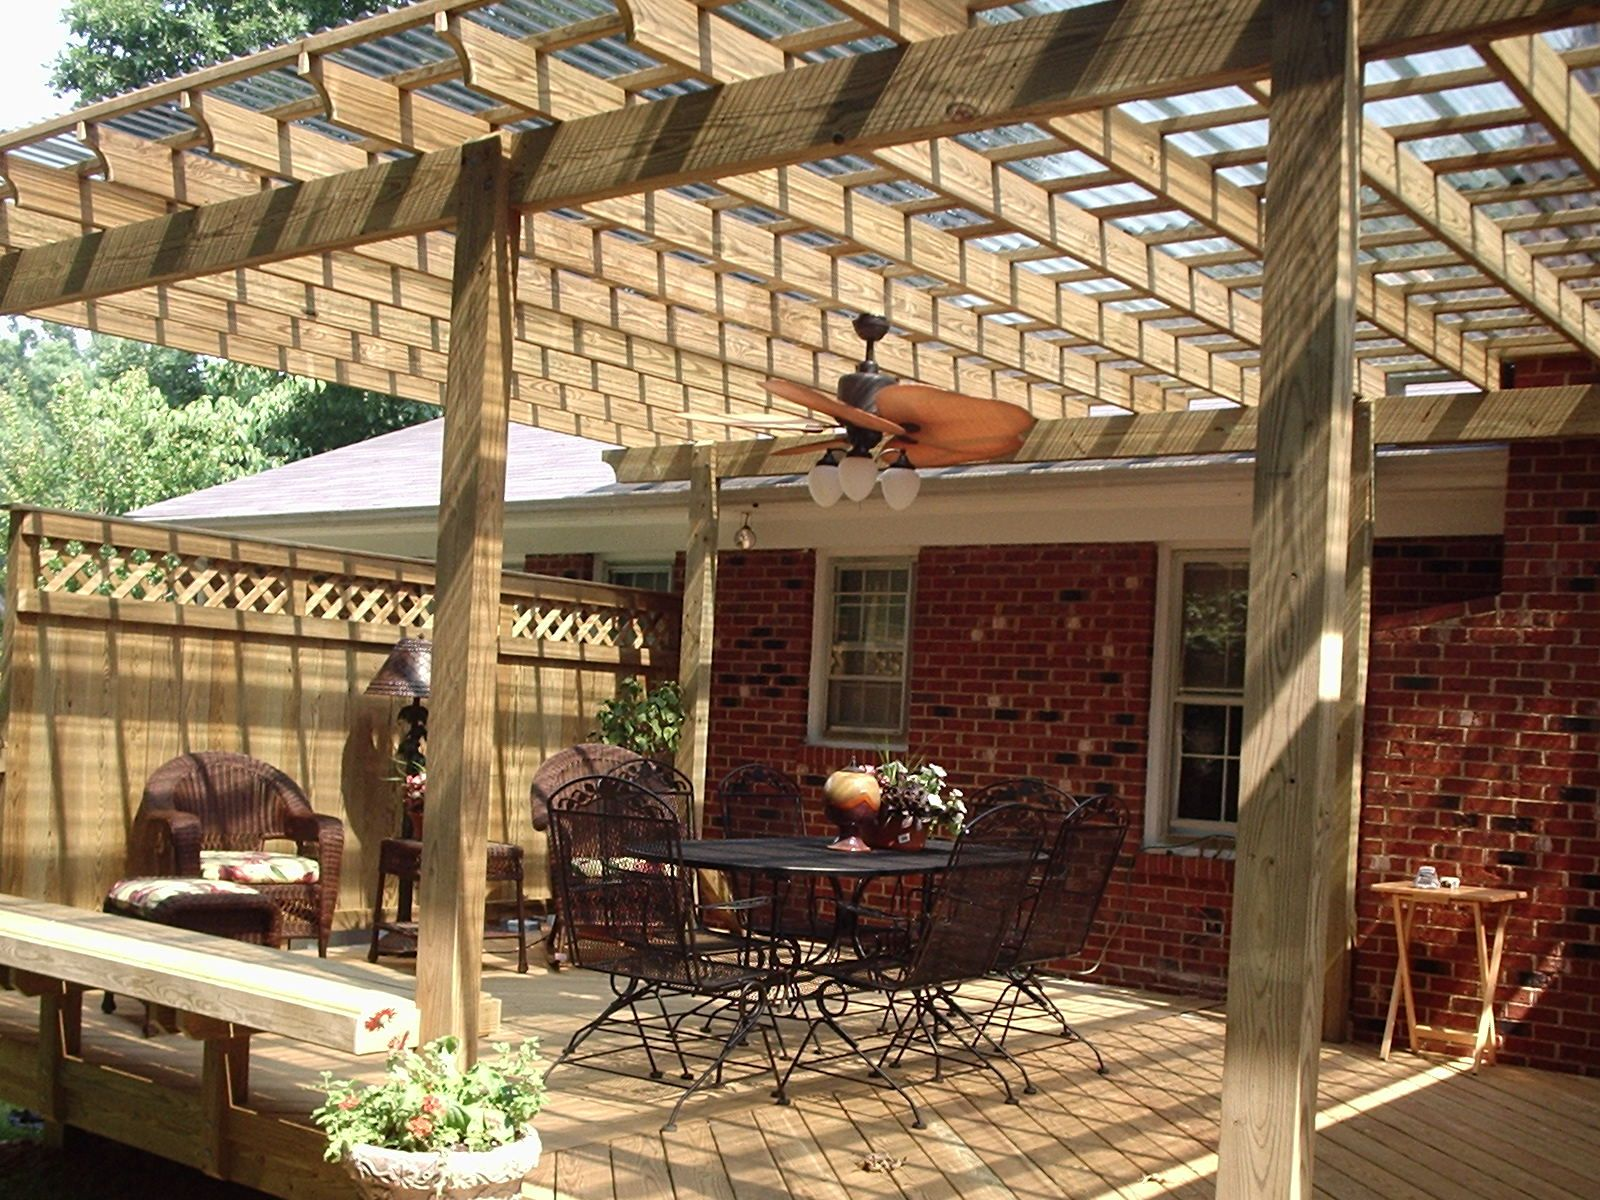 Get the shade you need with a pergola or covered porch pergolas covered porch plans get the shade you need with a pergola or covered porch baanklon Image collections